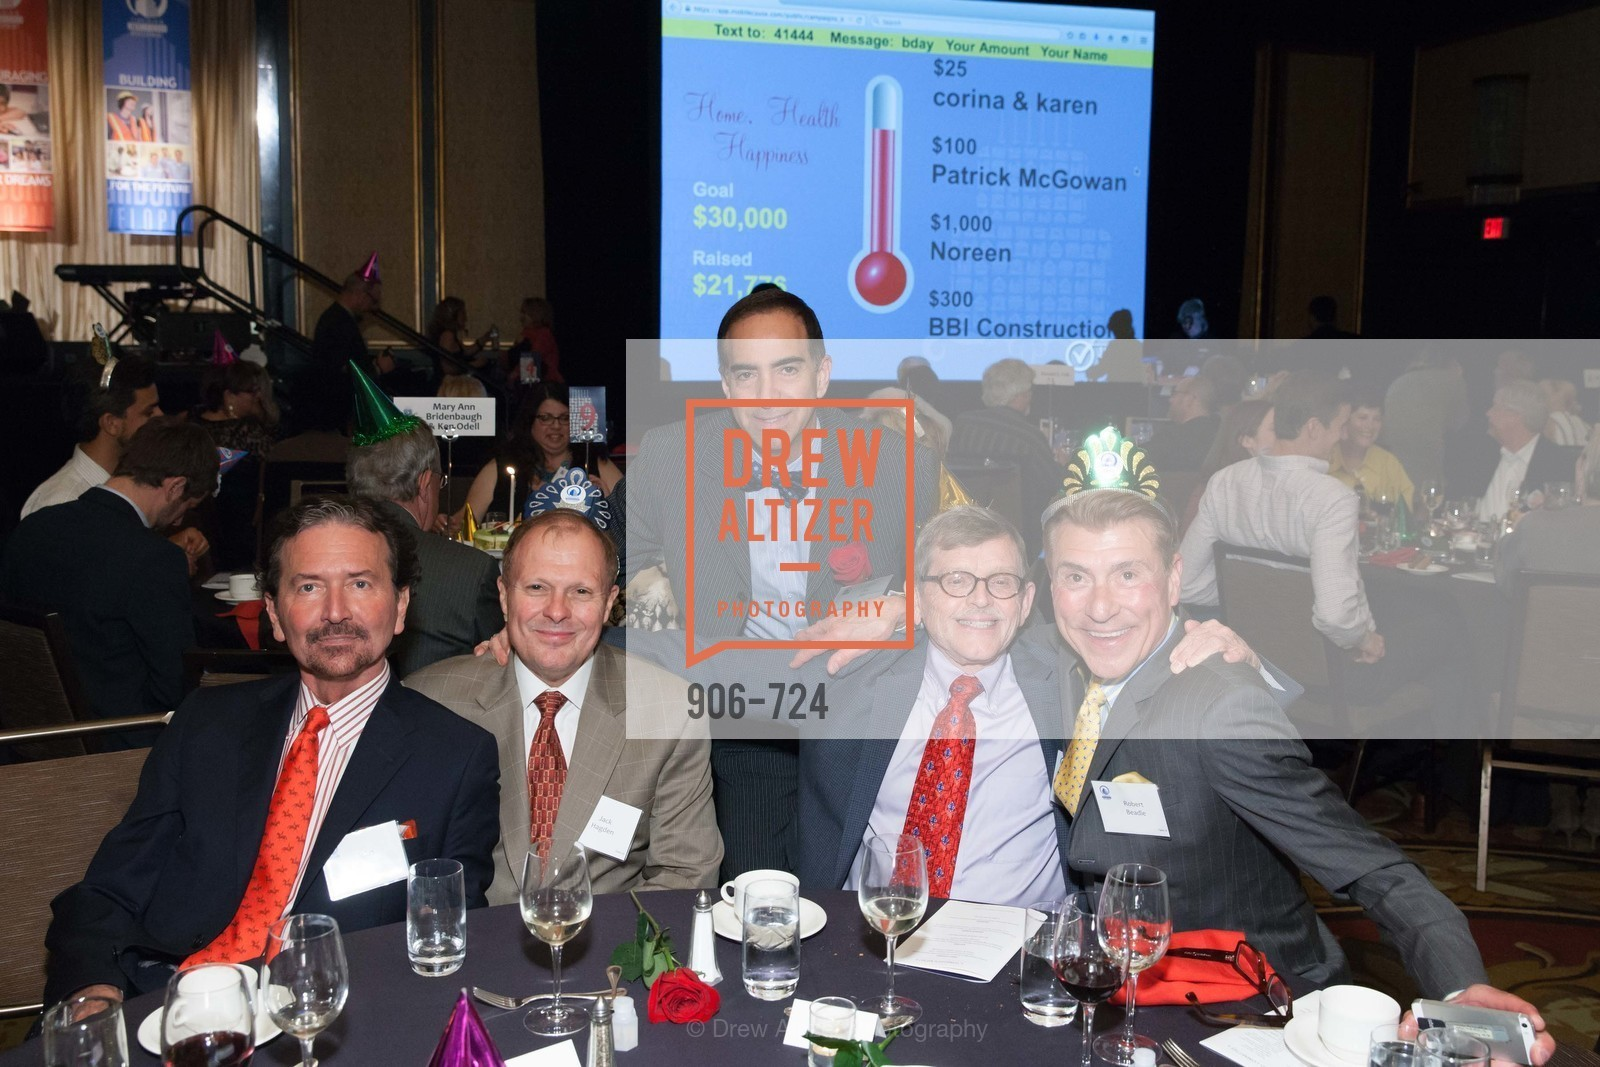 John Burns, Jack Hagden, Elie Abi, Bill Gregory, Robert Beadle, TNDC's 34th Annual Birthday Dinner, US, May 13th, 2015,Drew Altizer, Drew Altizer Photography, full-service agency, private events, San Francisco photographer, photographer california